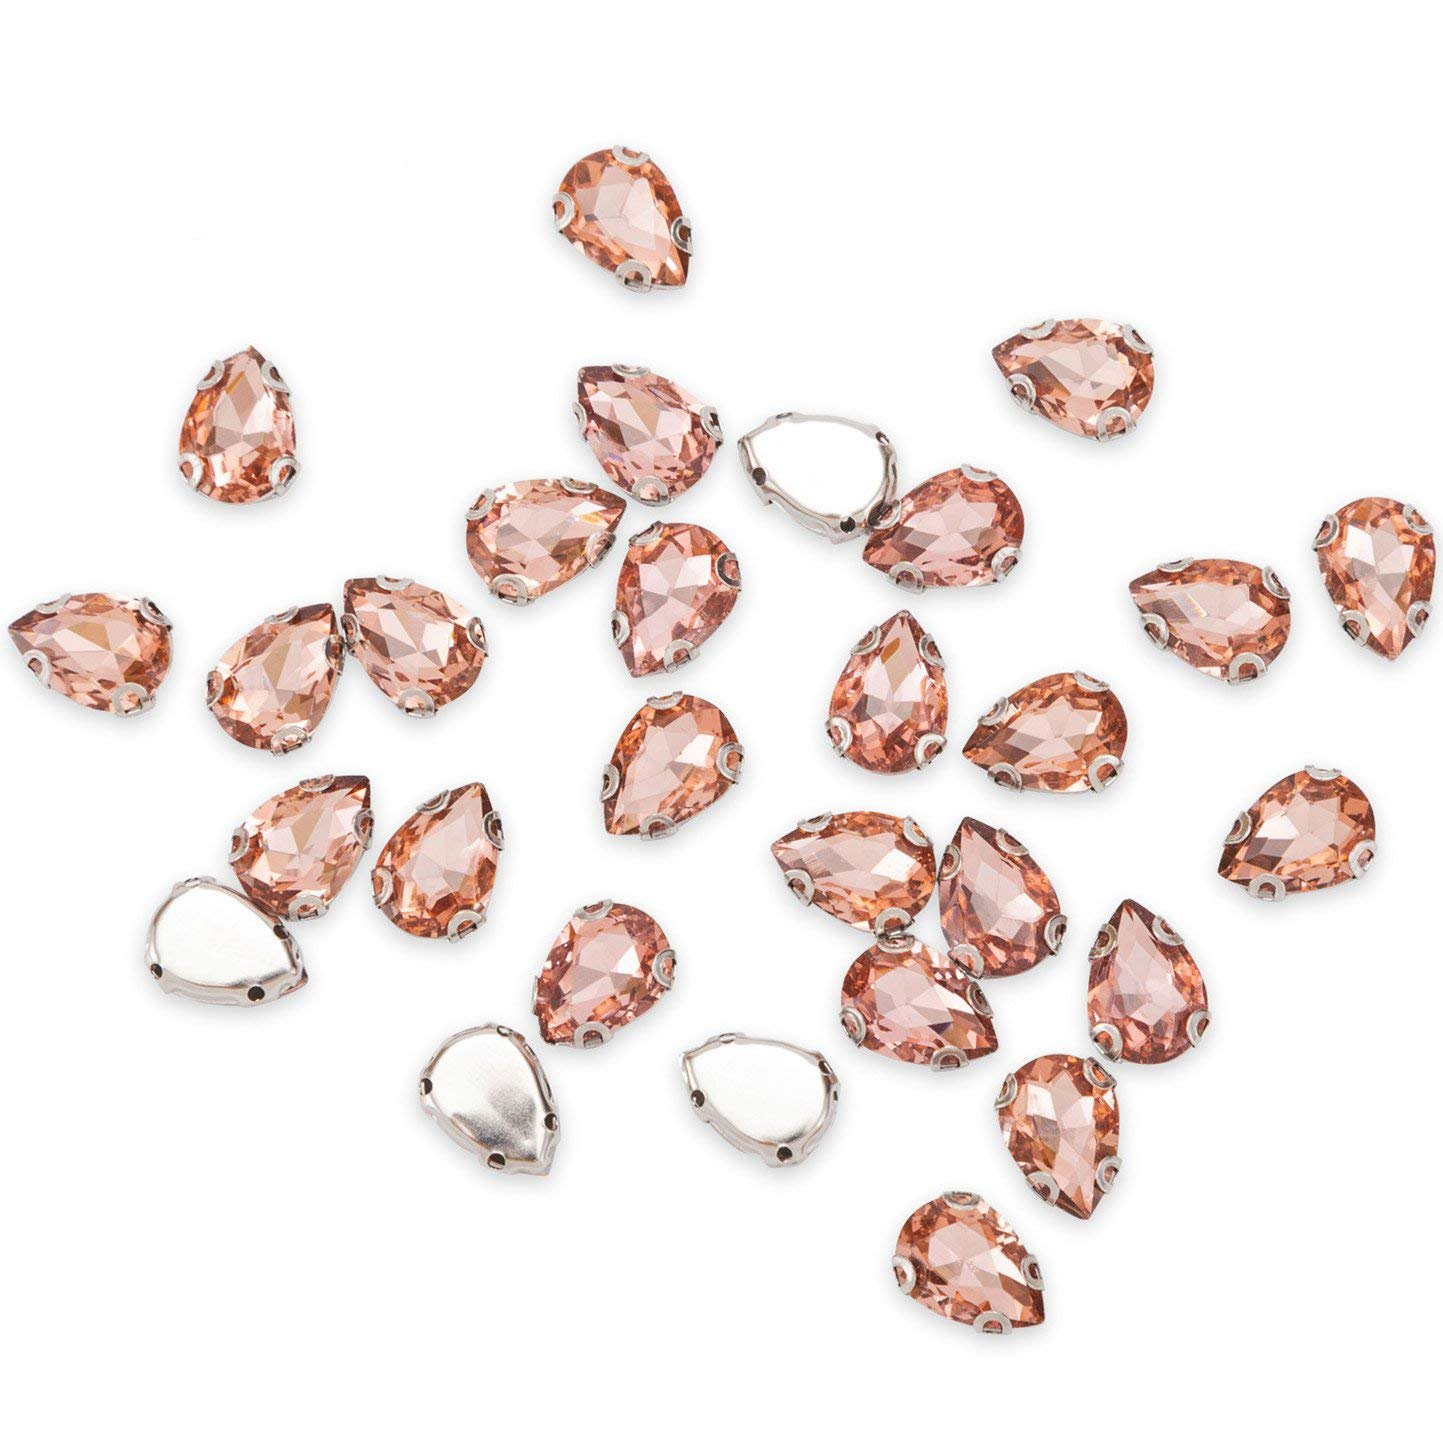 7534389a814f Amazon.com  100Pcs Crystal Rhinestones Sewing on